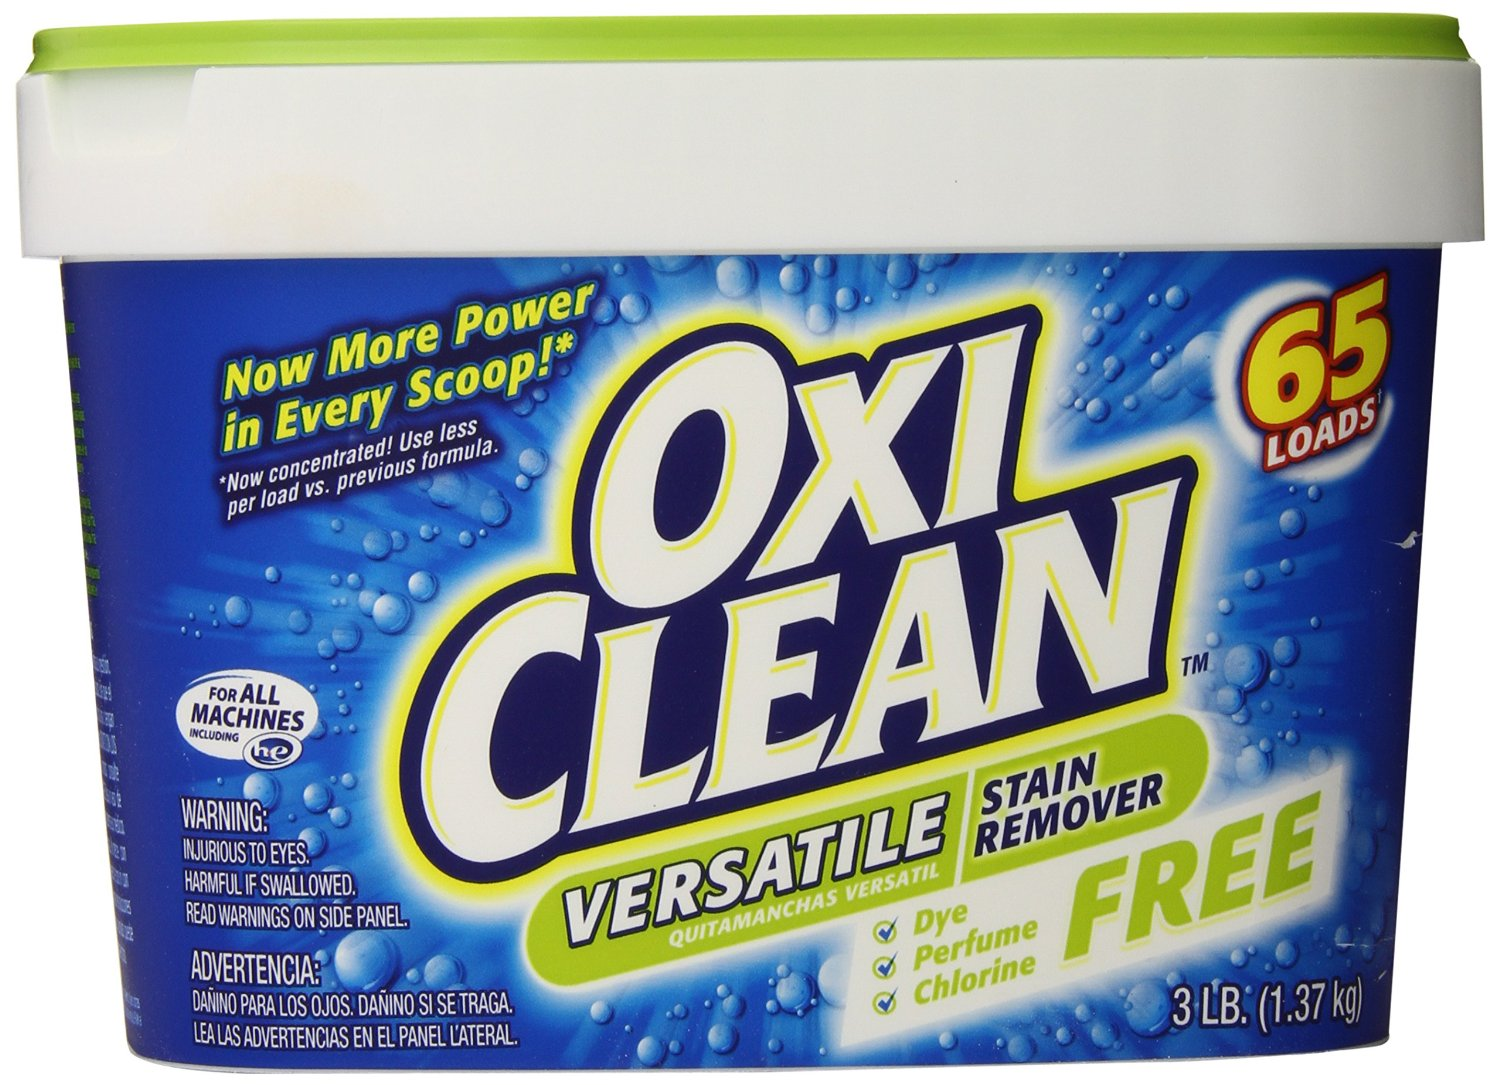 Oxiclean Versatile Stain Remover Free, 65 Loads, 3 Pounds (Pack of 4)